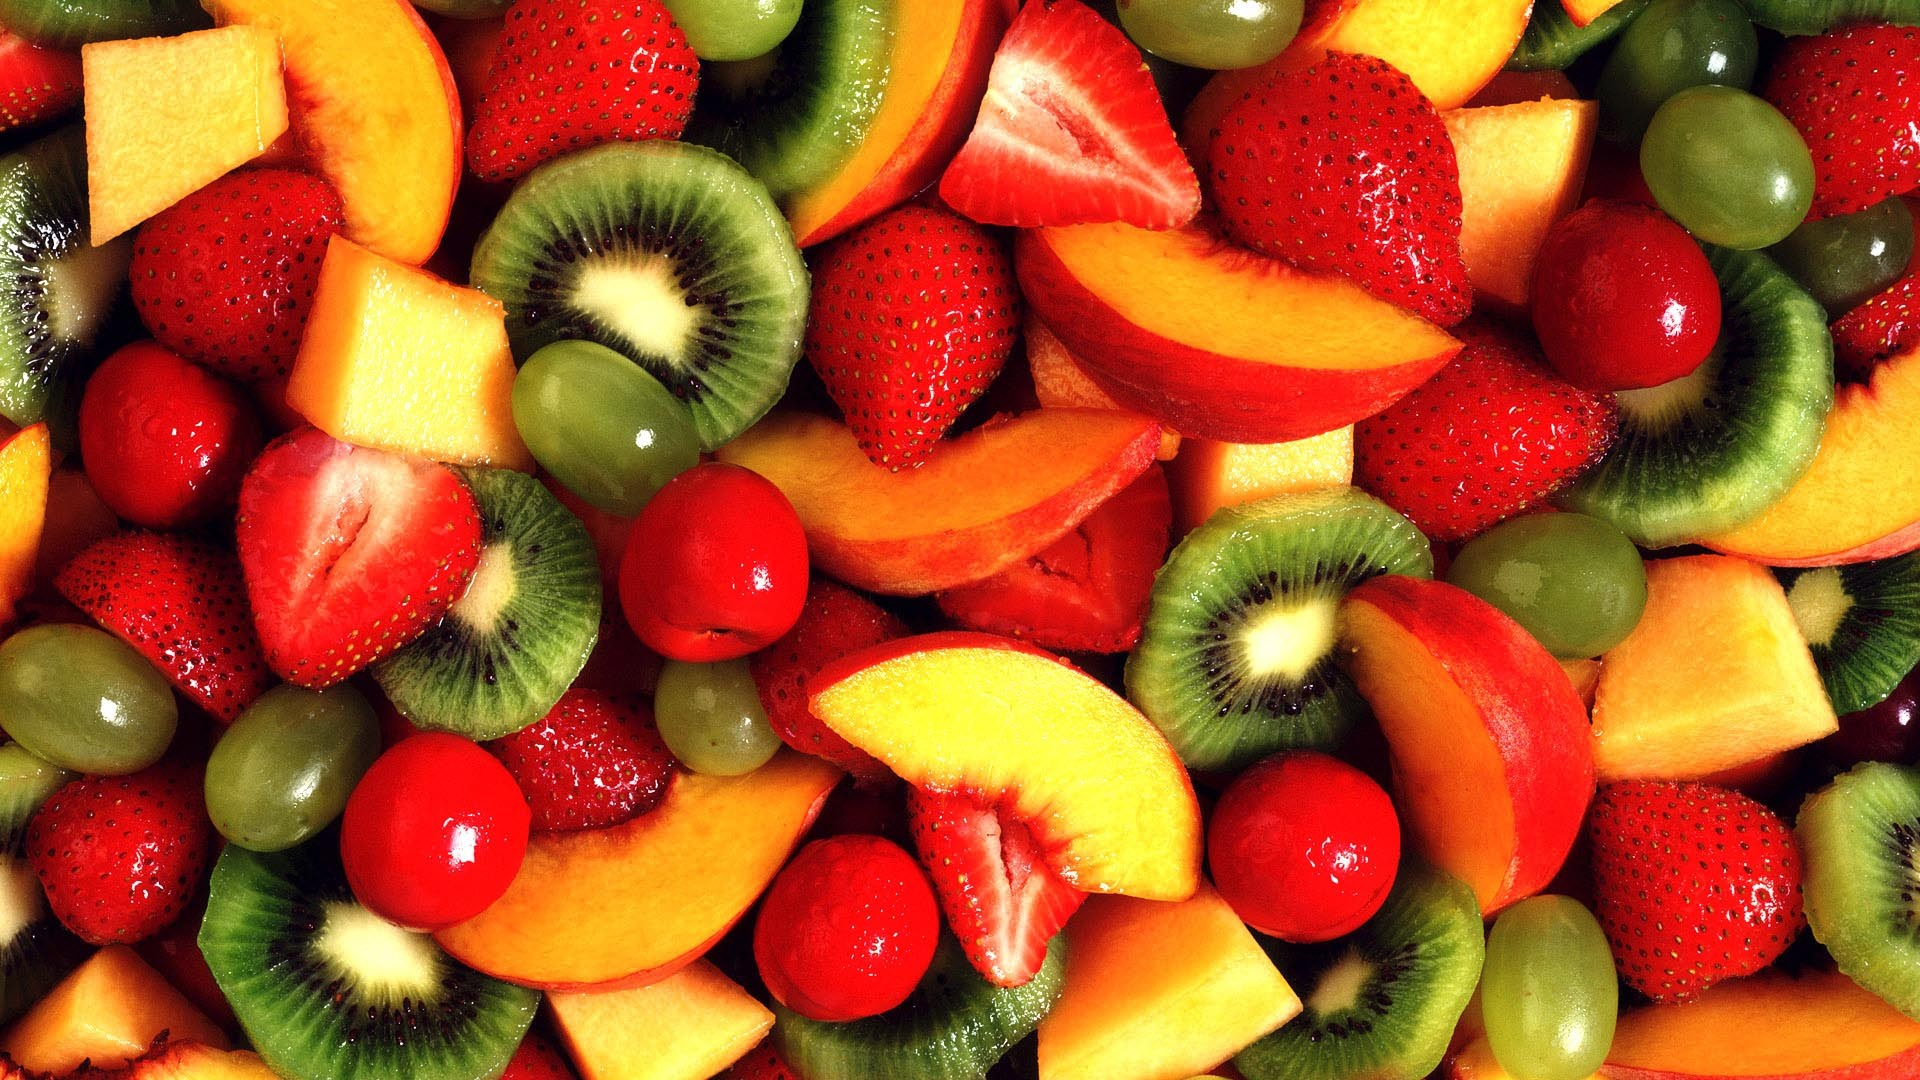 Fruits and vegetables wallpaper hd - Fruits And Vegetable Wallpapers Hd